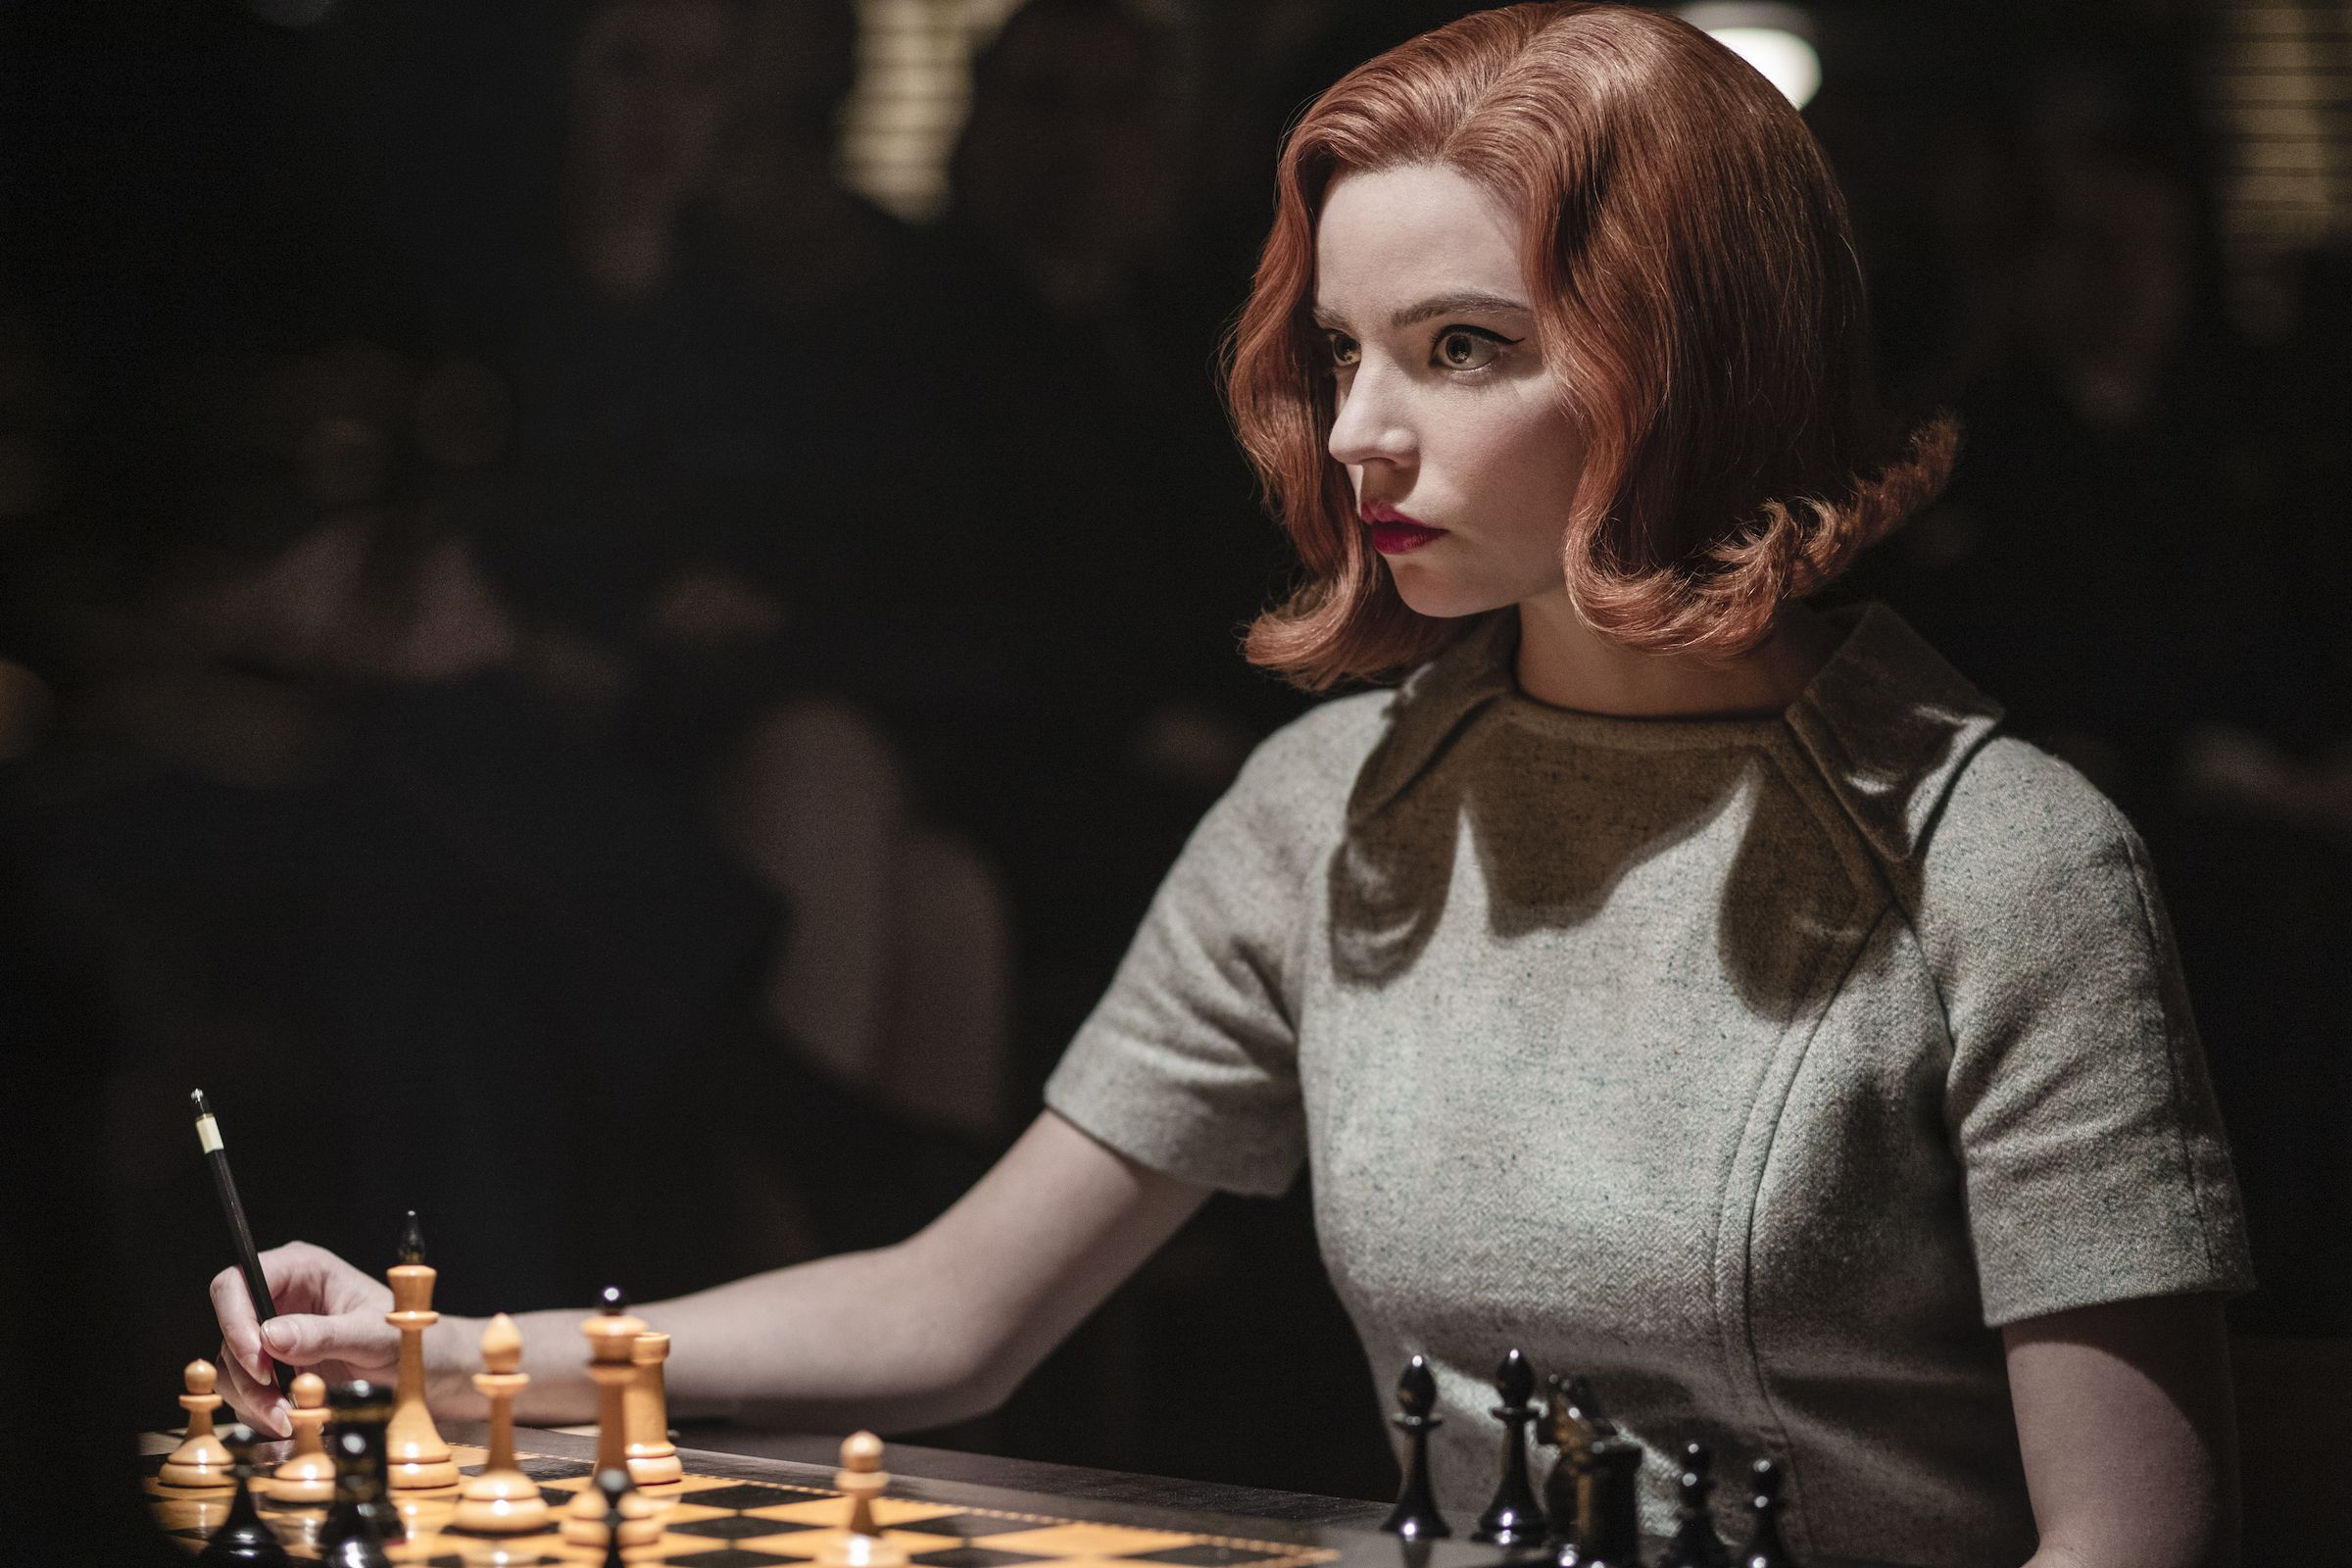 Will There Be A Season 2 of The Queen's Gambit?